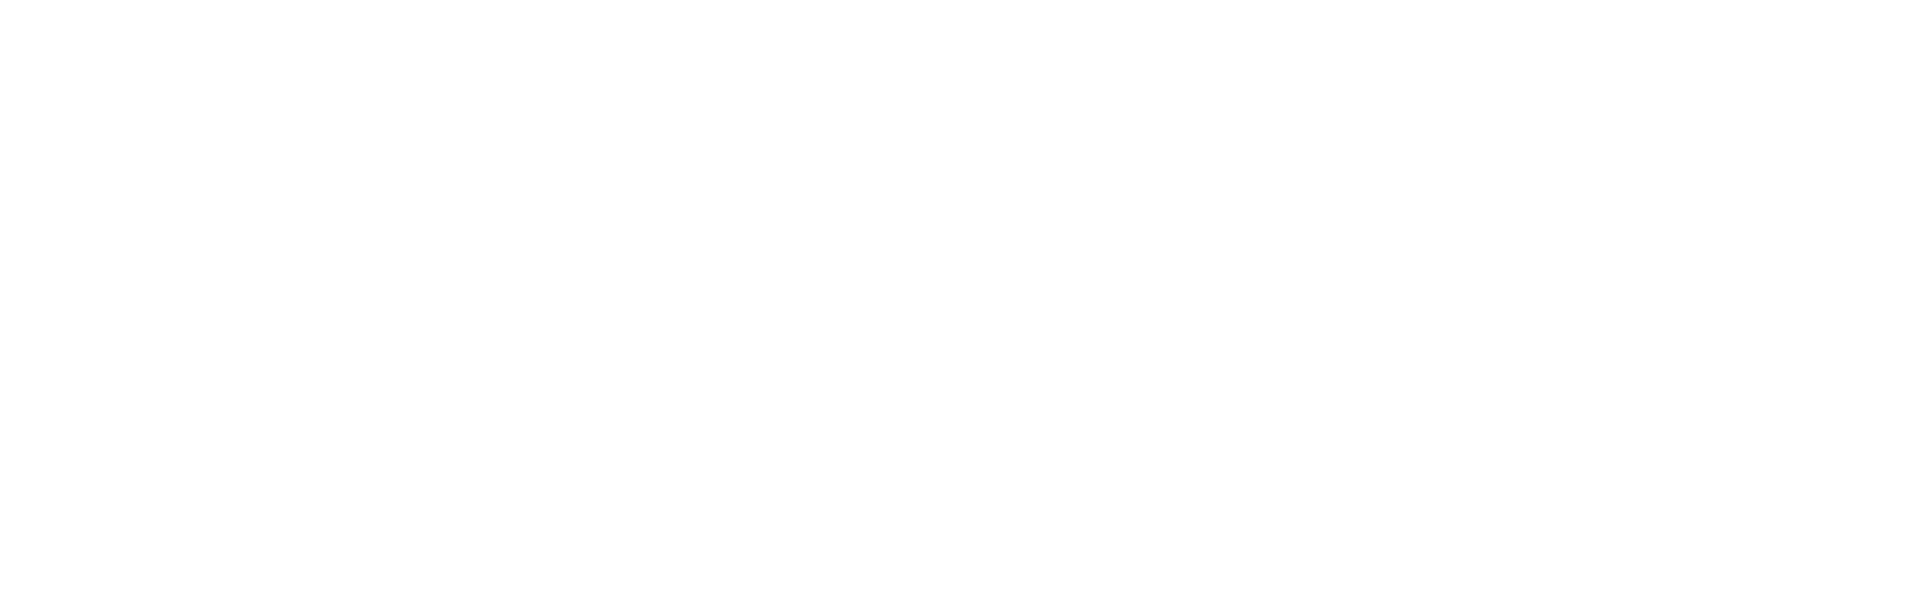 National Association of Unclaimed Property Administrators | A Network of the National Association of State Treasurers